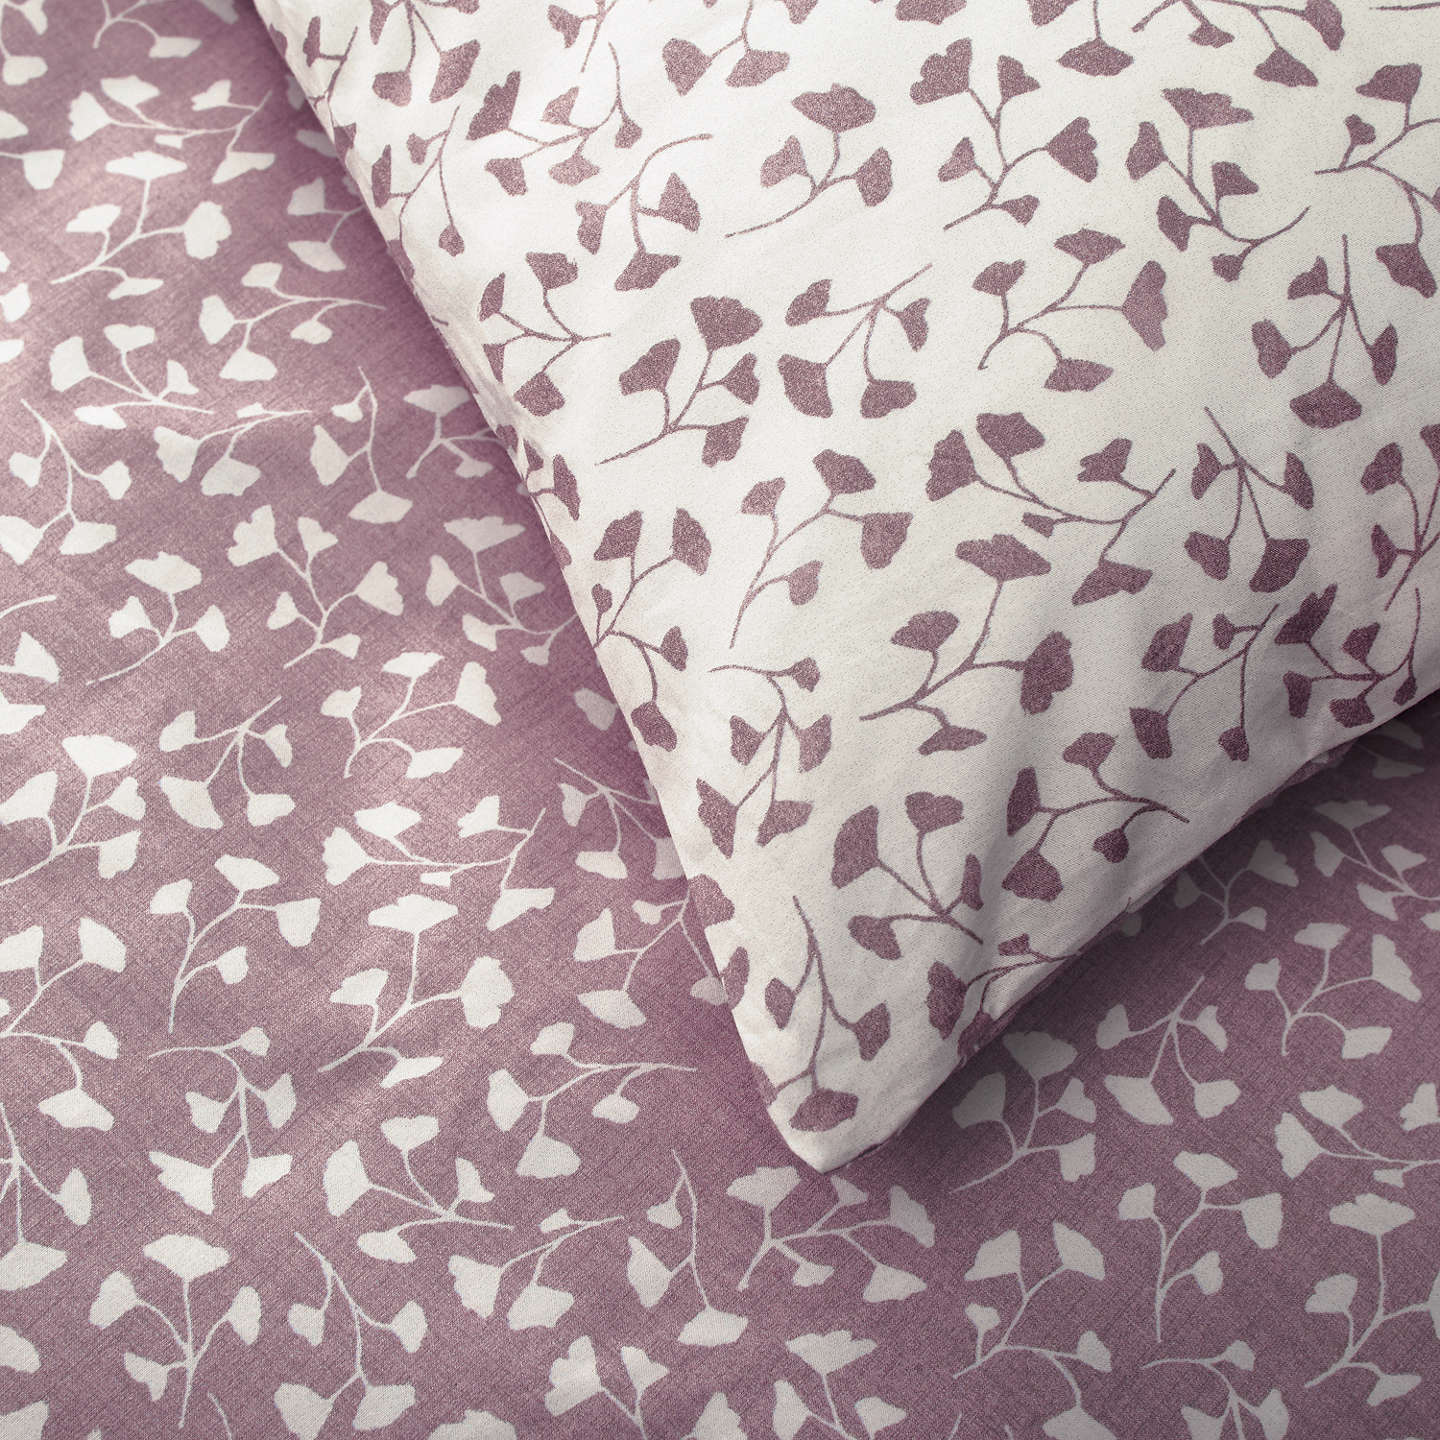 BuyJohn Lewis Country Arley Duvet Cover and Pillowcase Set, Single, Cassis Online at johnlewis.com